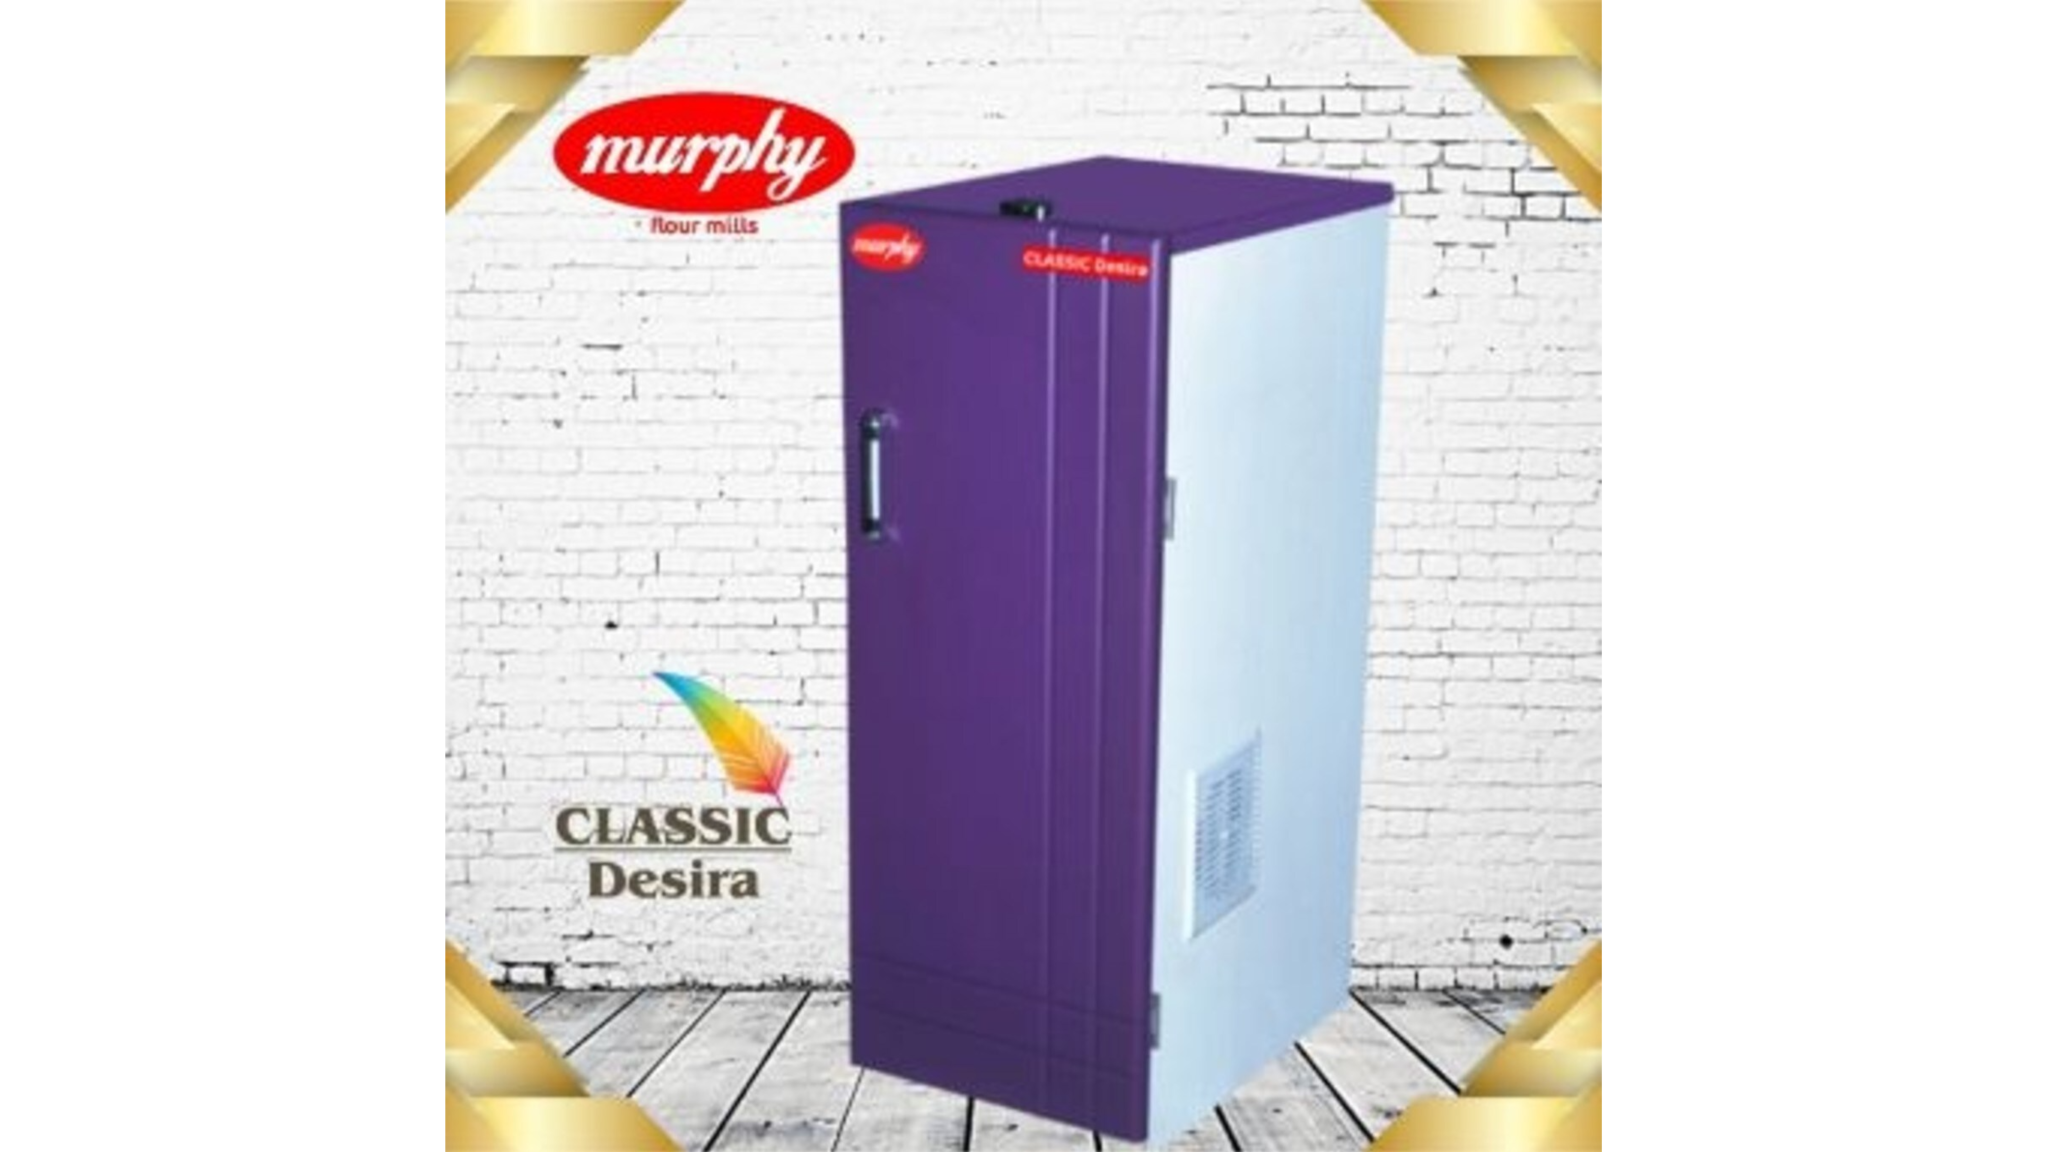 If you are searching for a powerful and affordable best atta chakki in India then the Murphy Flour Mills Deluxe ... 21-Nov-2017 · Uploaded by Murphy Atta Chakki